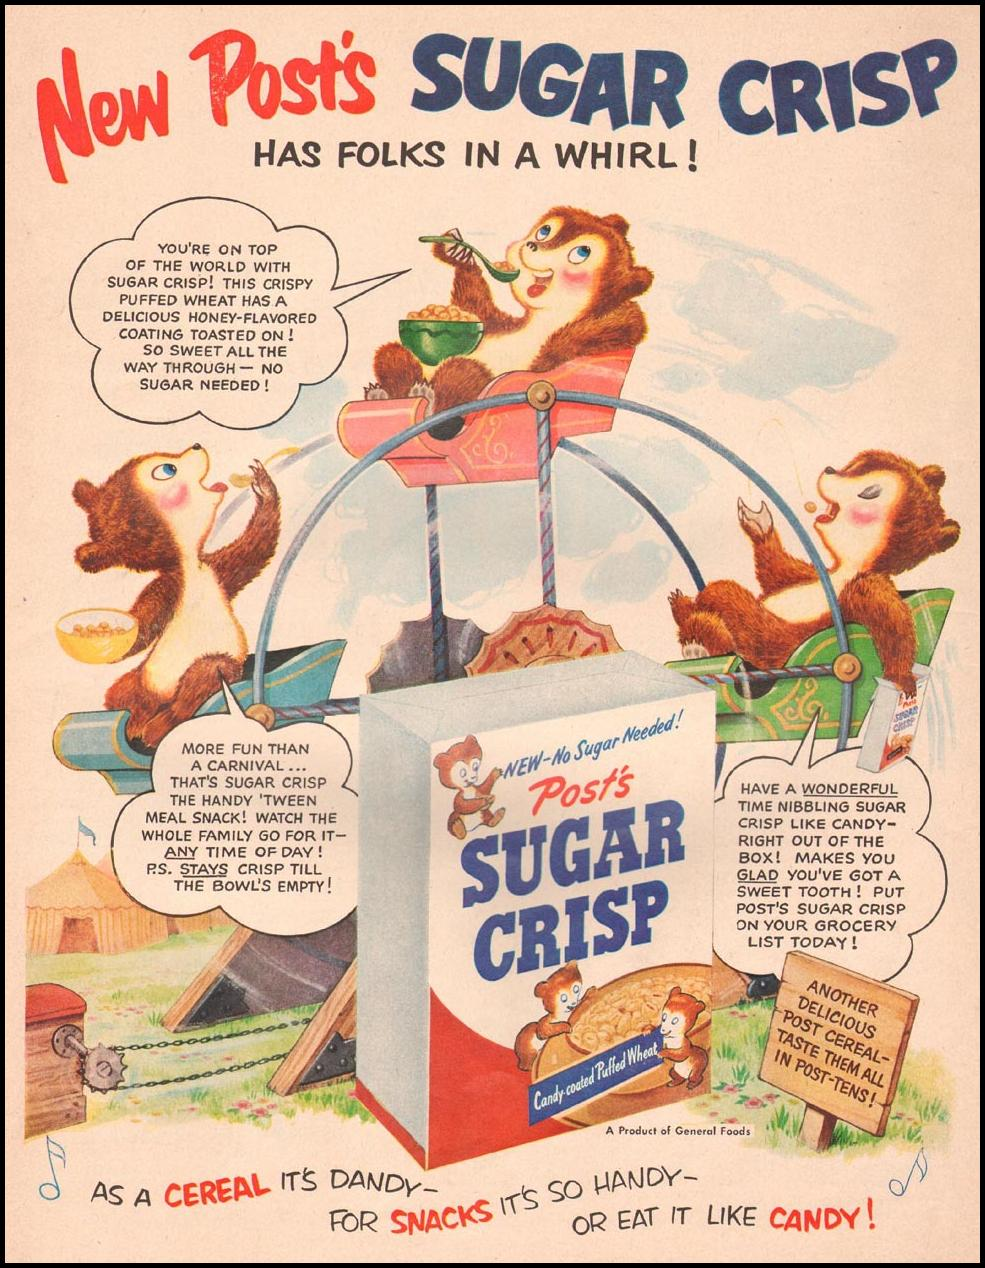 POST SUGAR CRISP CEREAL LIFE 09/03/1951 p. 42